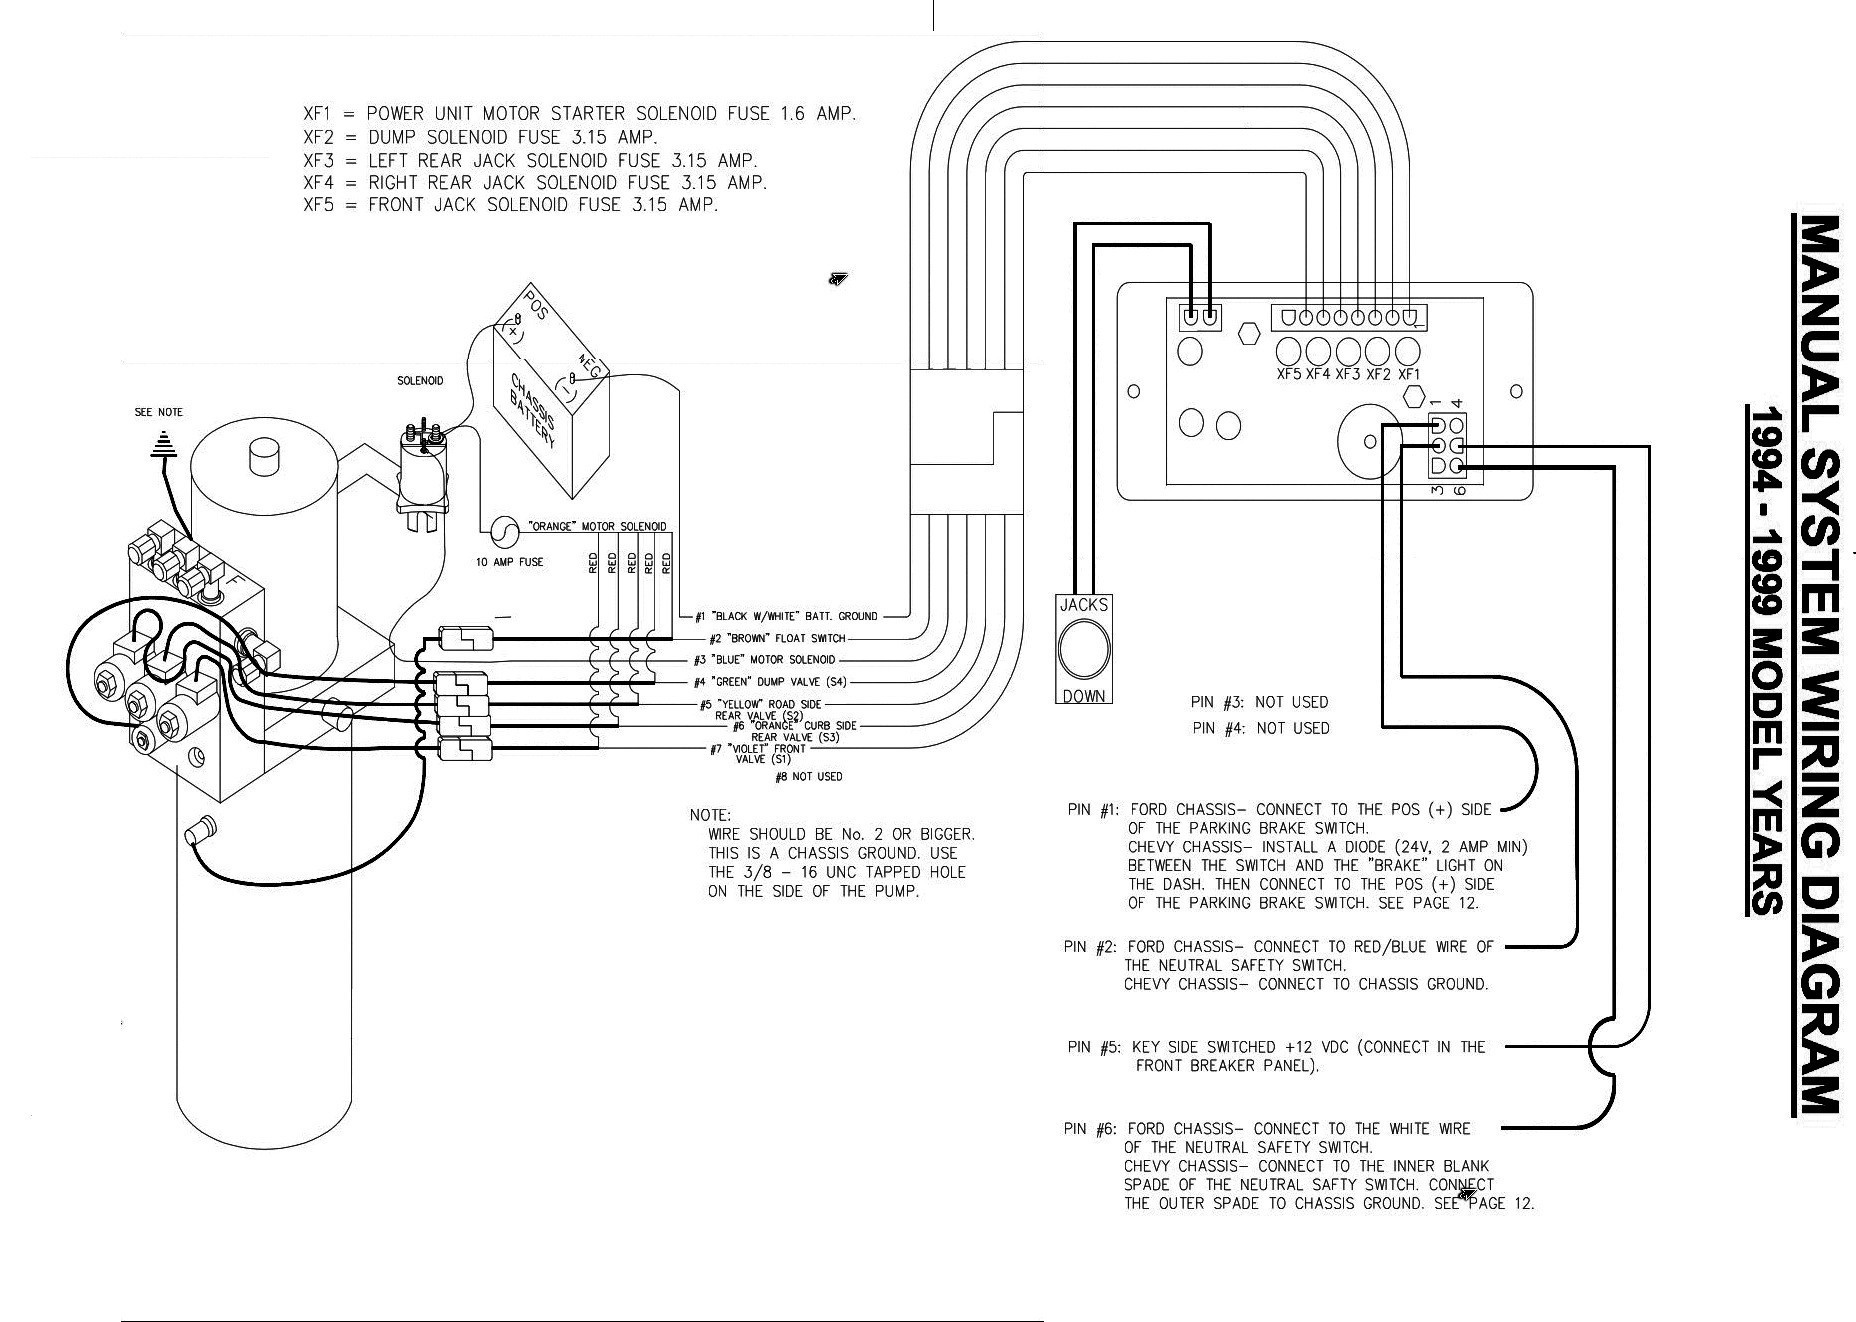 diagram] 2002 fleetwood fiesta rv wiring diagram full version hd quality wiring  diagram - diagramlab.conservatoire-chanterie.fr  conservatoire de la chanterie